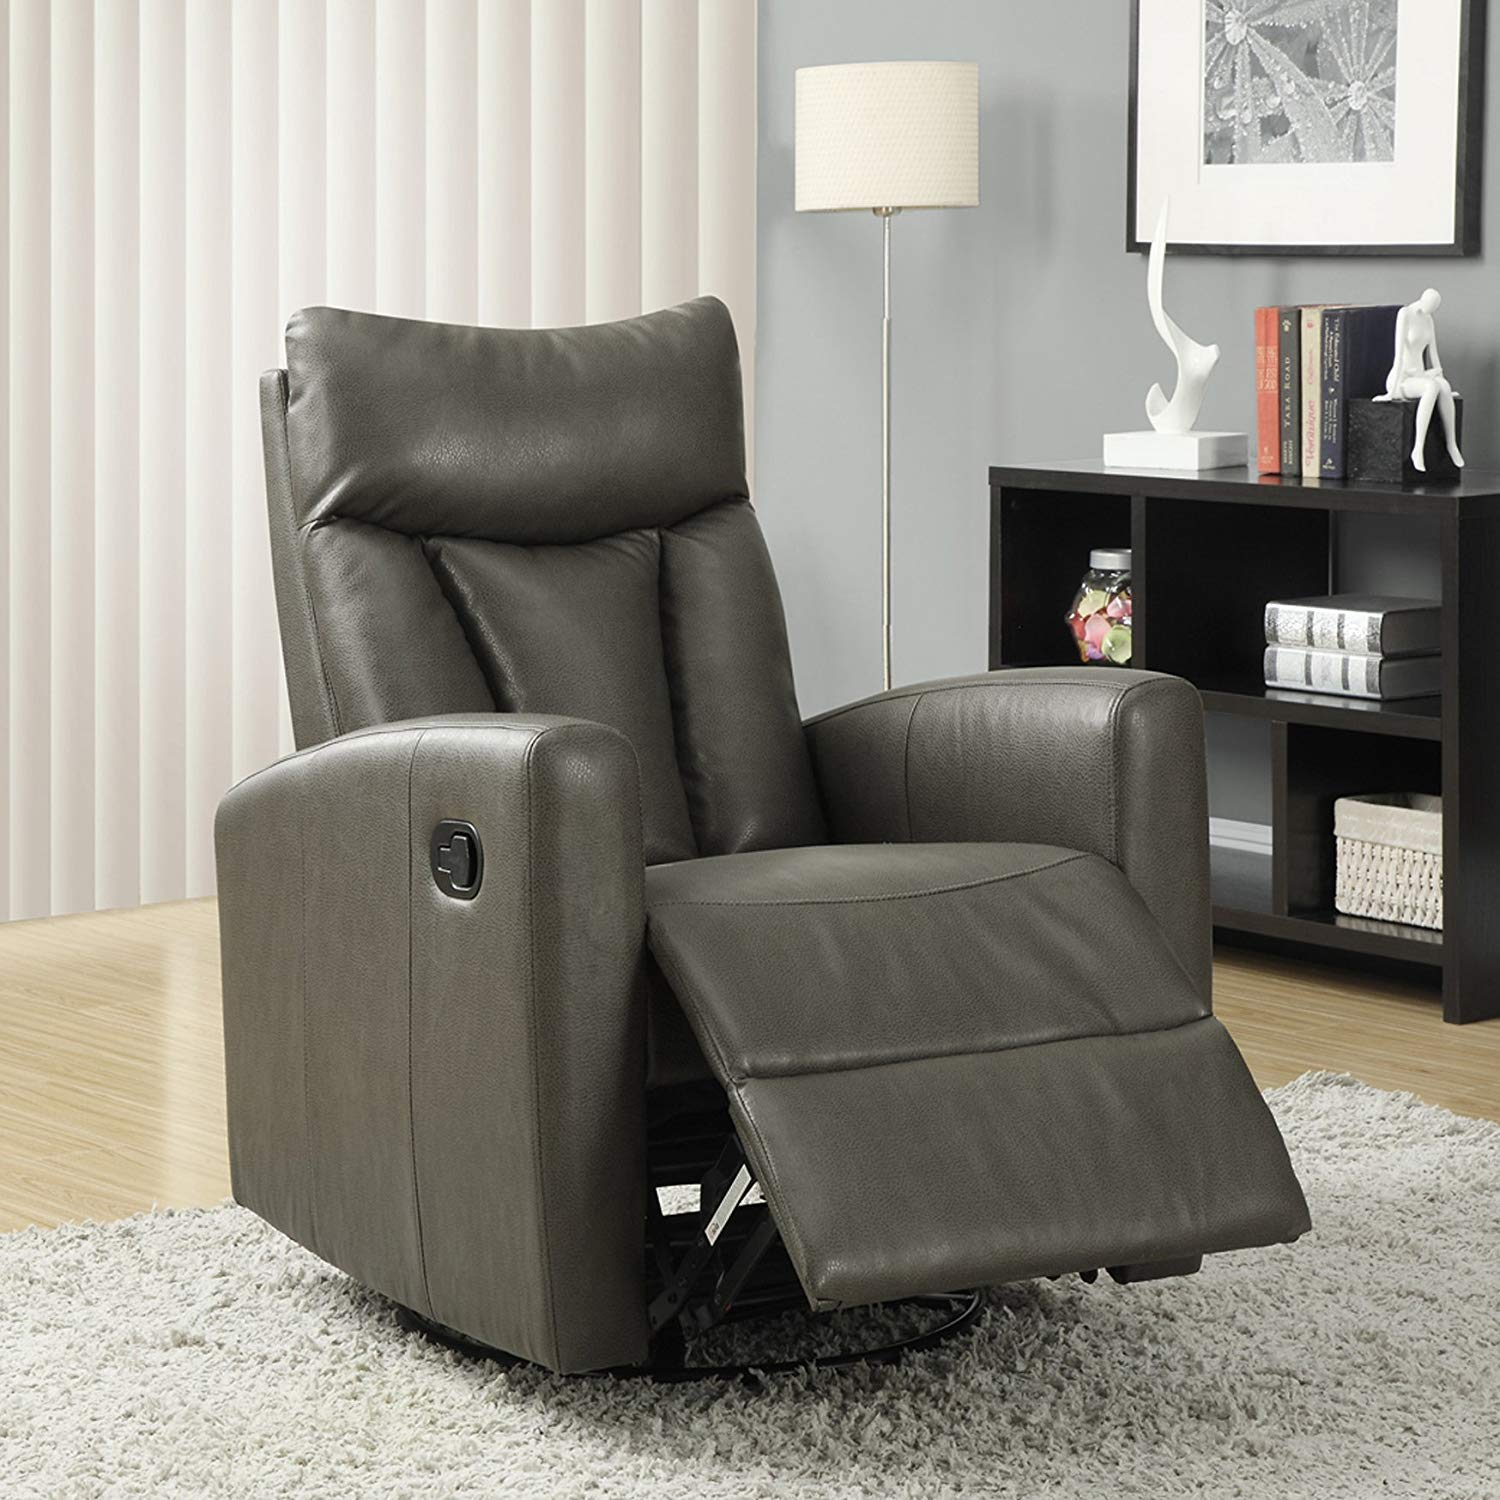 Monarch Specialties Recliner Chair - Single Leather Sofa Home Theatre Seating - Rocker Recliner, Swivel and Glide Base (Charcoal Gray) by Monarch Specialties